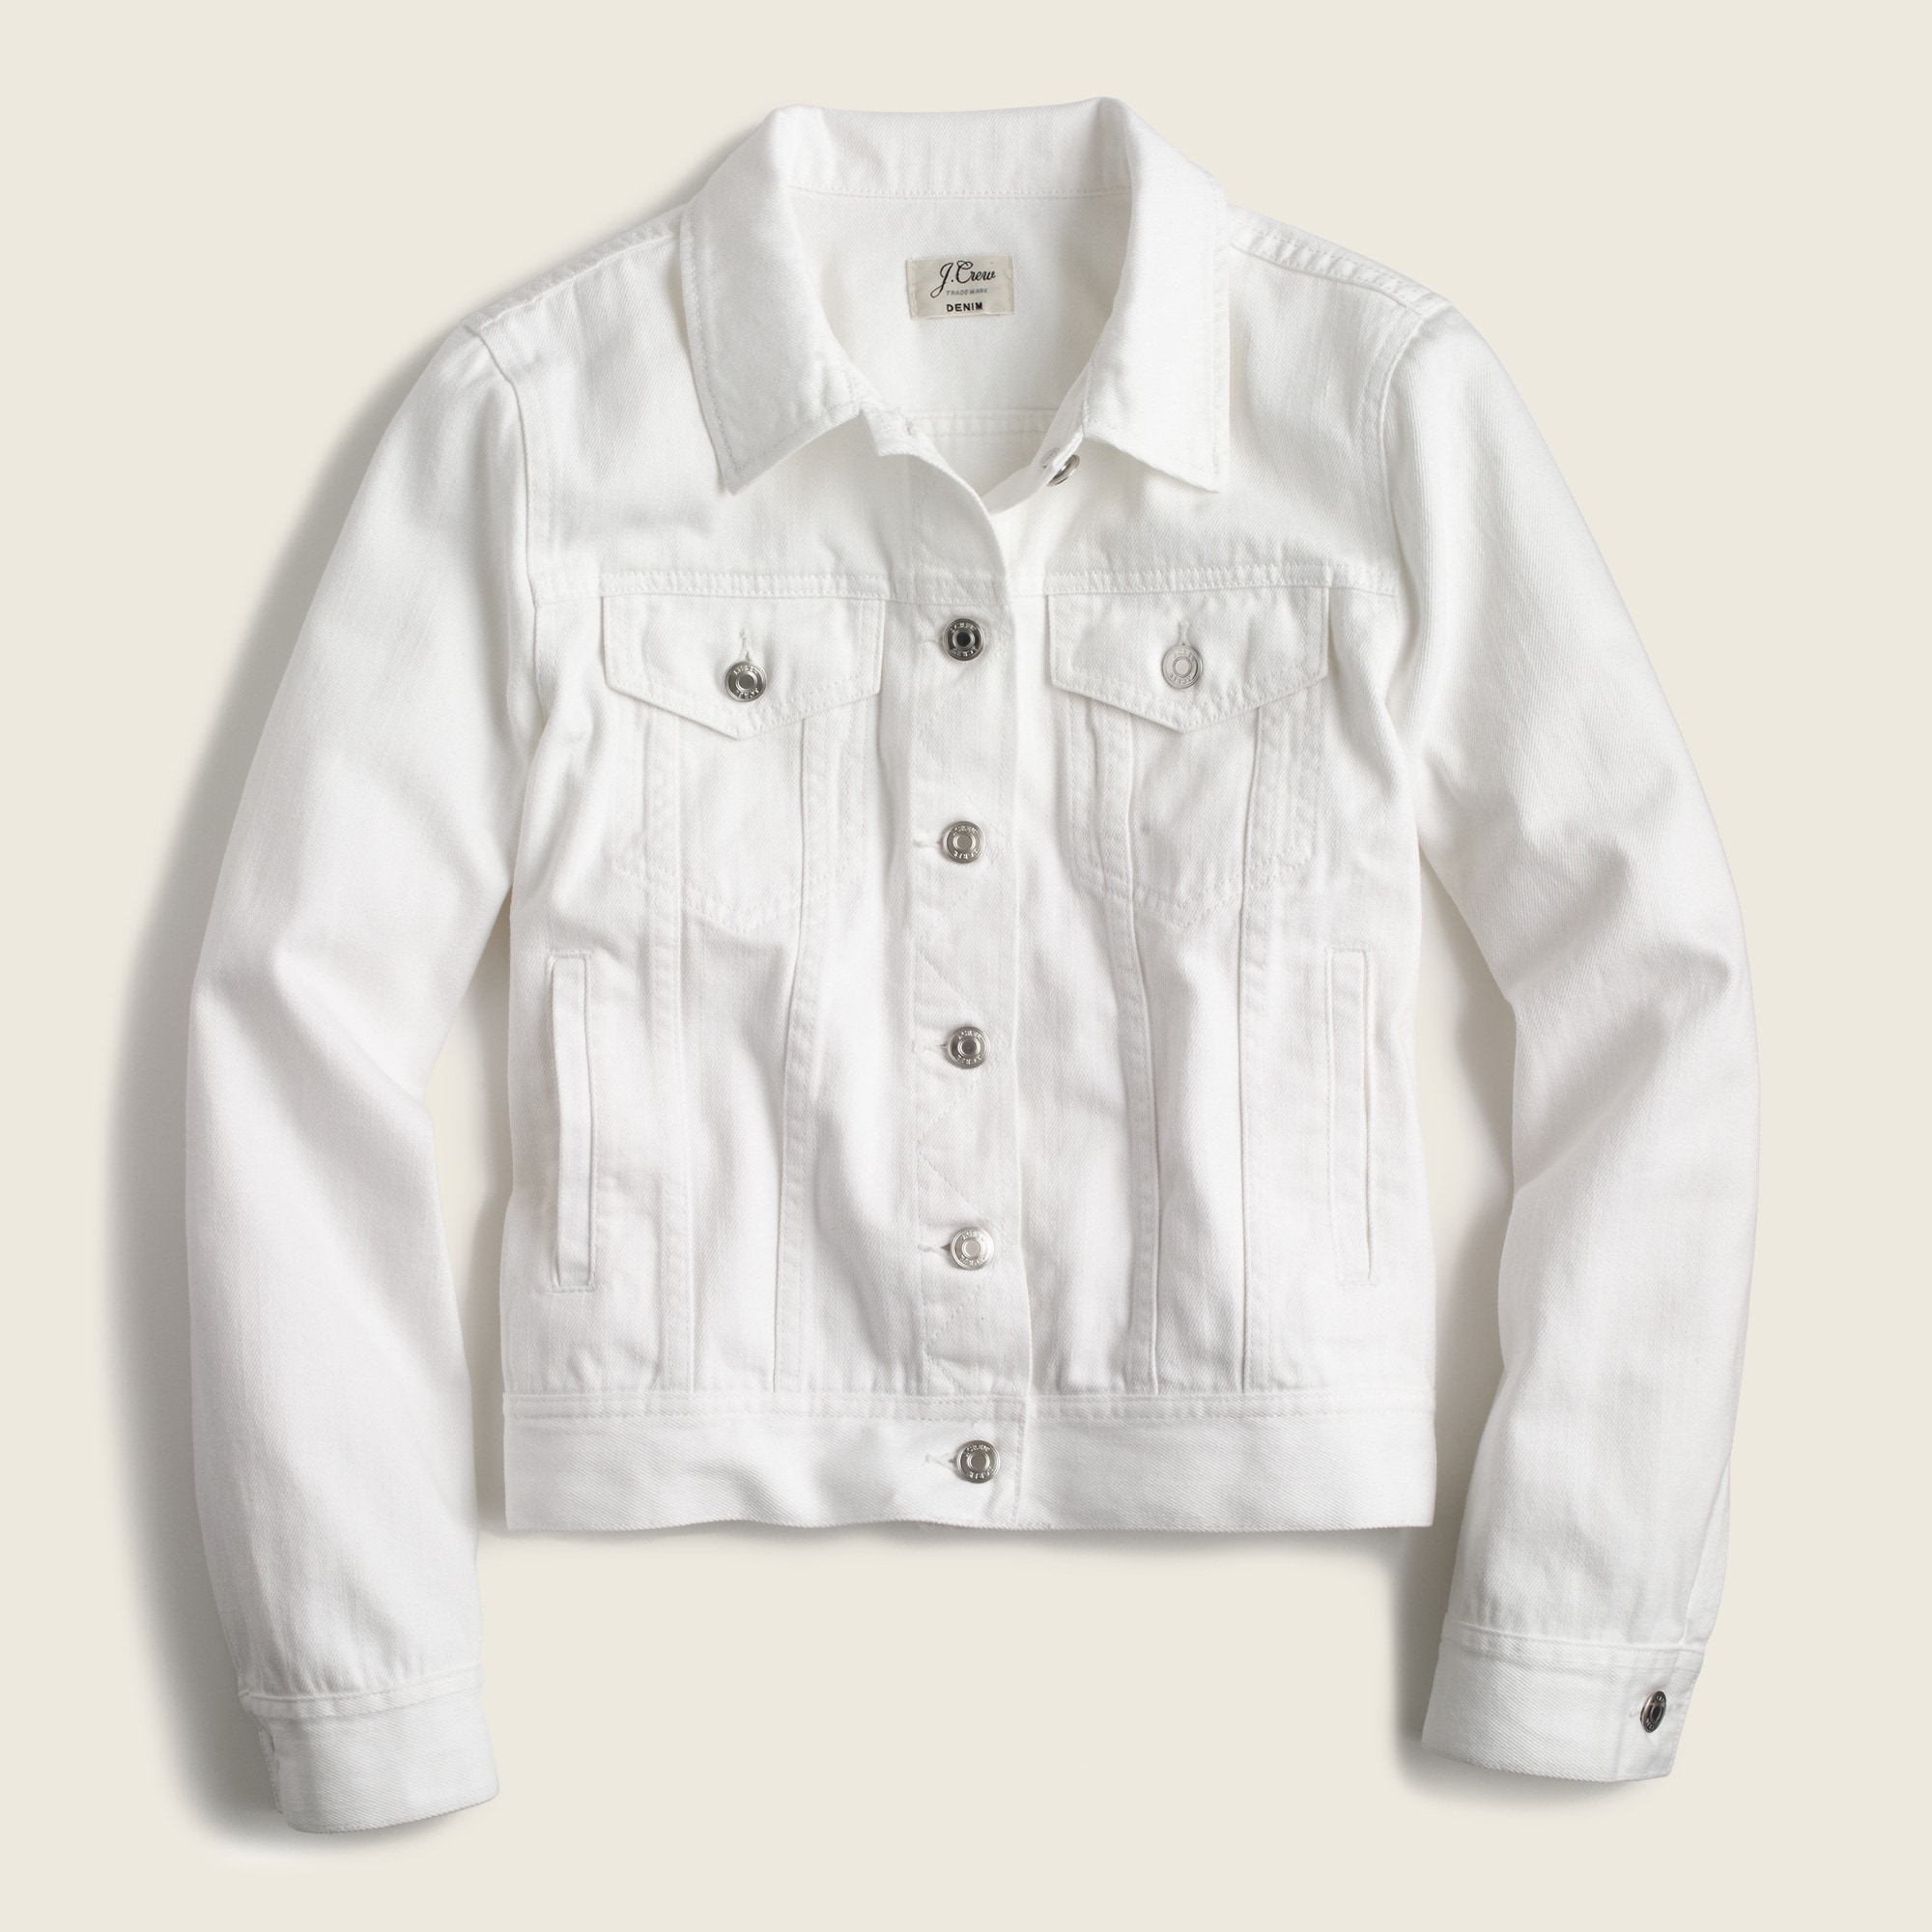 Petite denim jacket in white